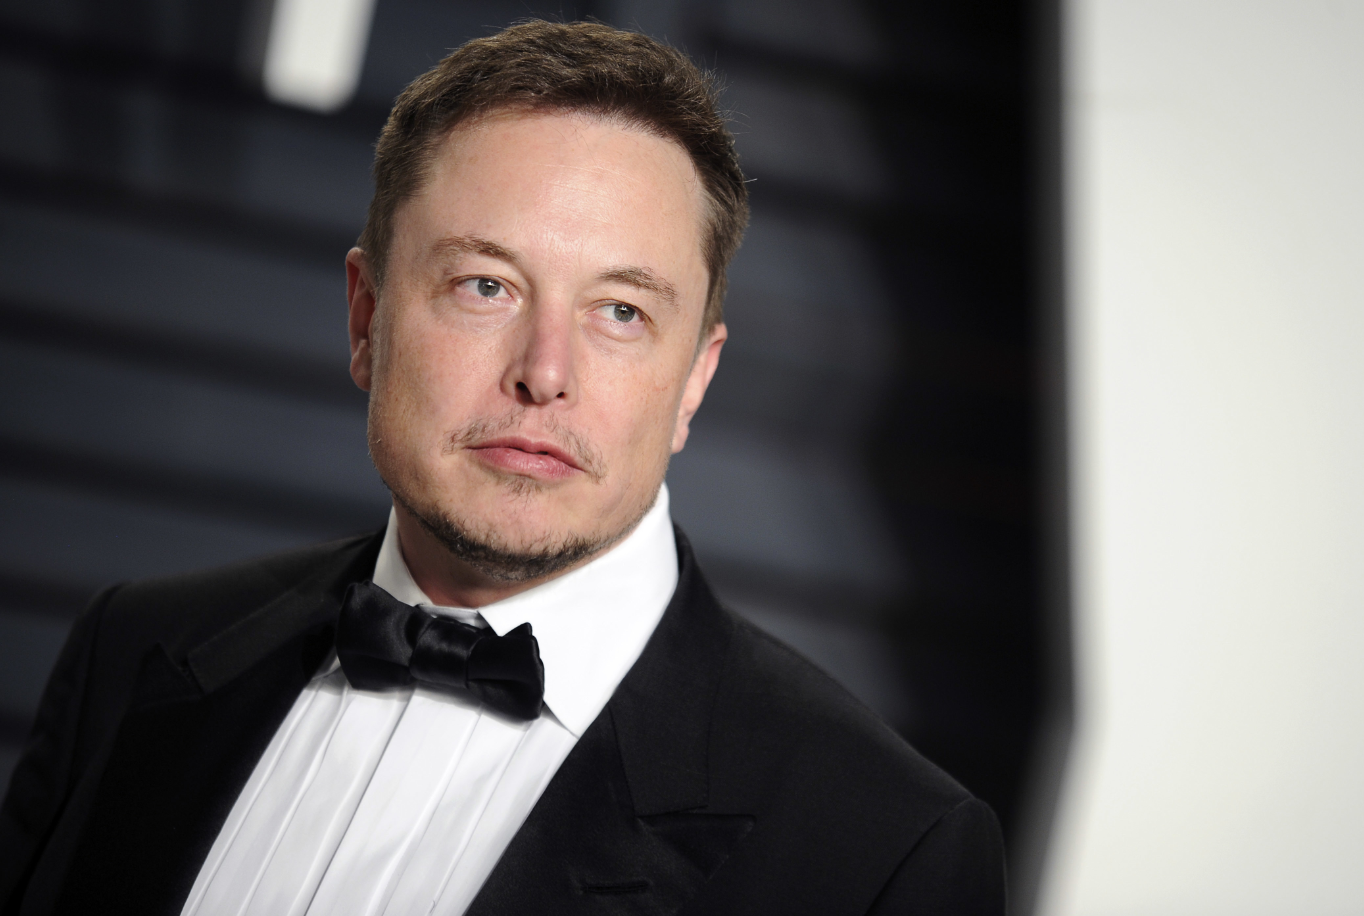 Tesla offers CEO Elon Musk a monumental pay-for-performance deal